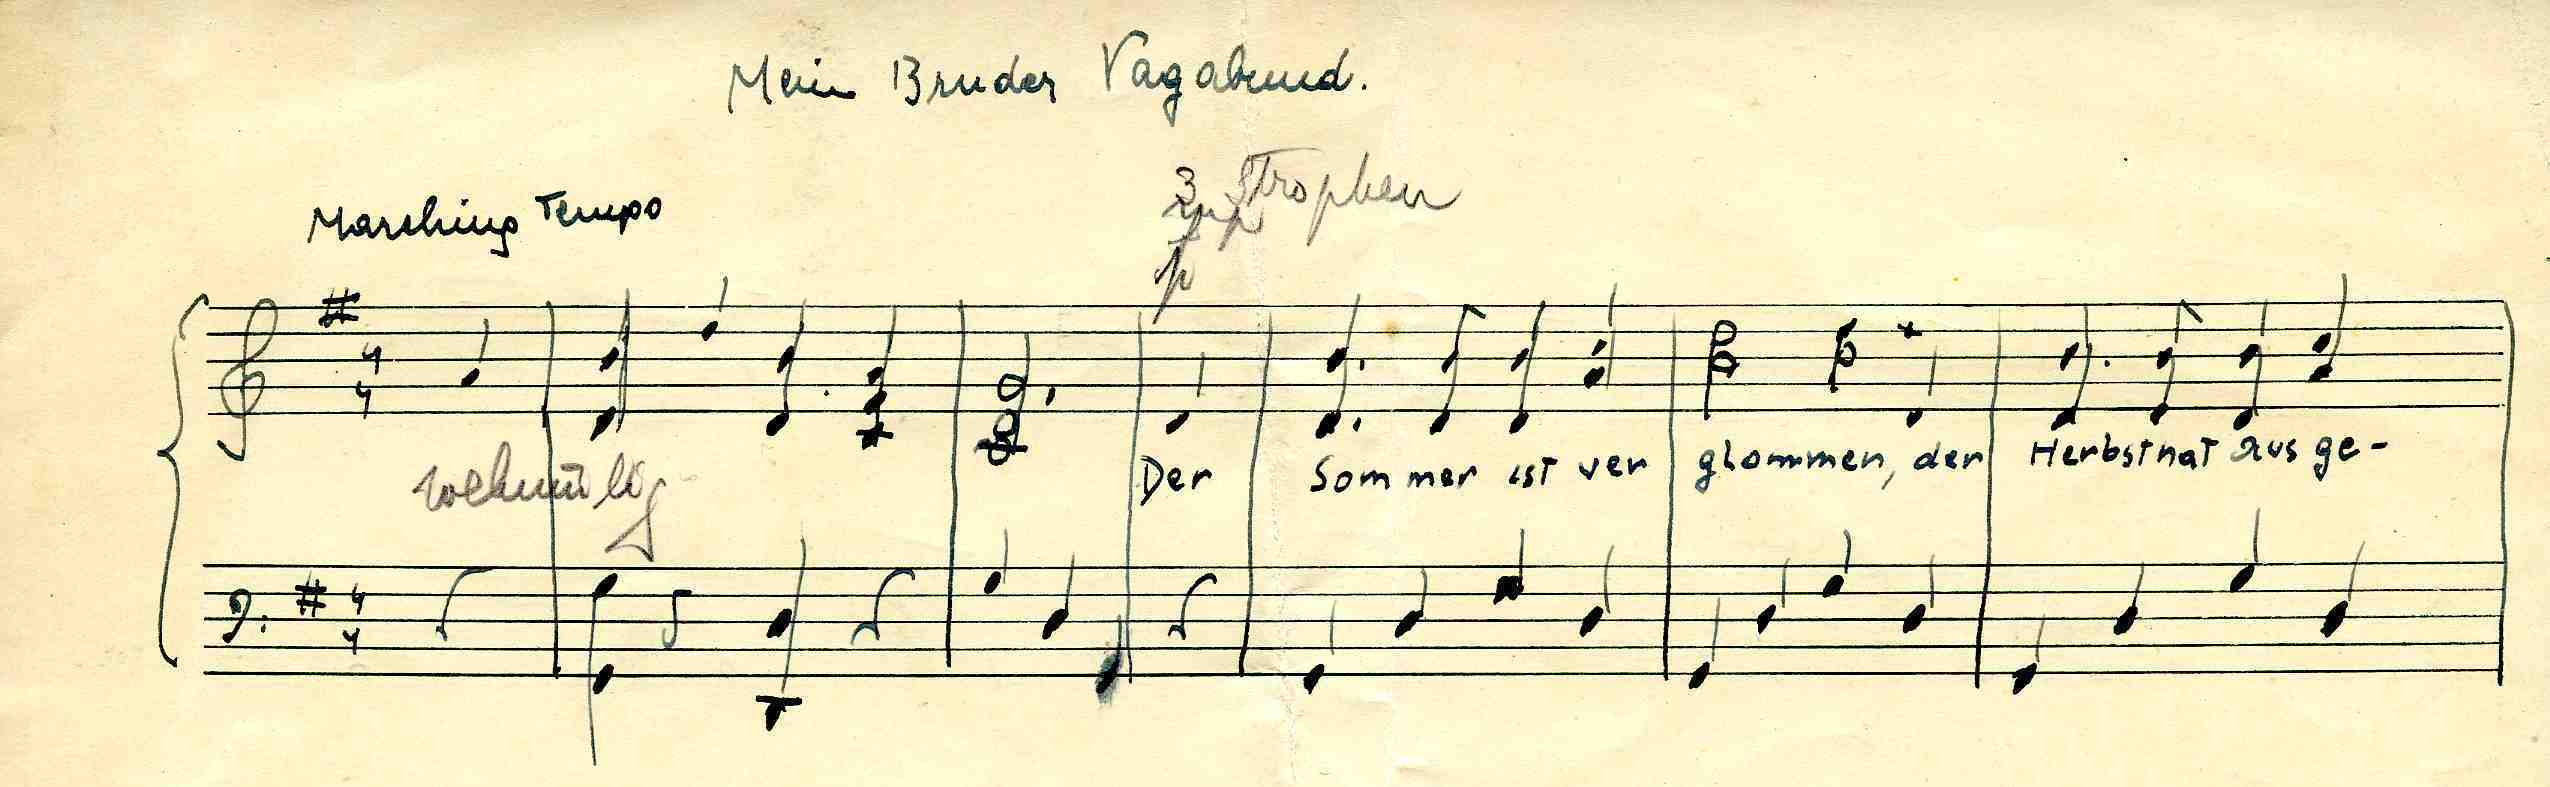 Drawn music score Cataloguing Bruder  Soyfer the